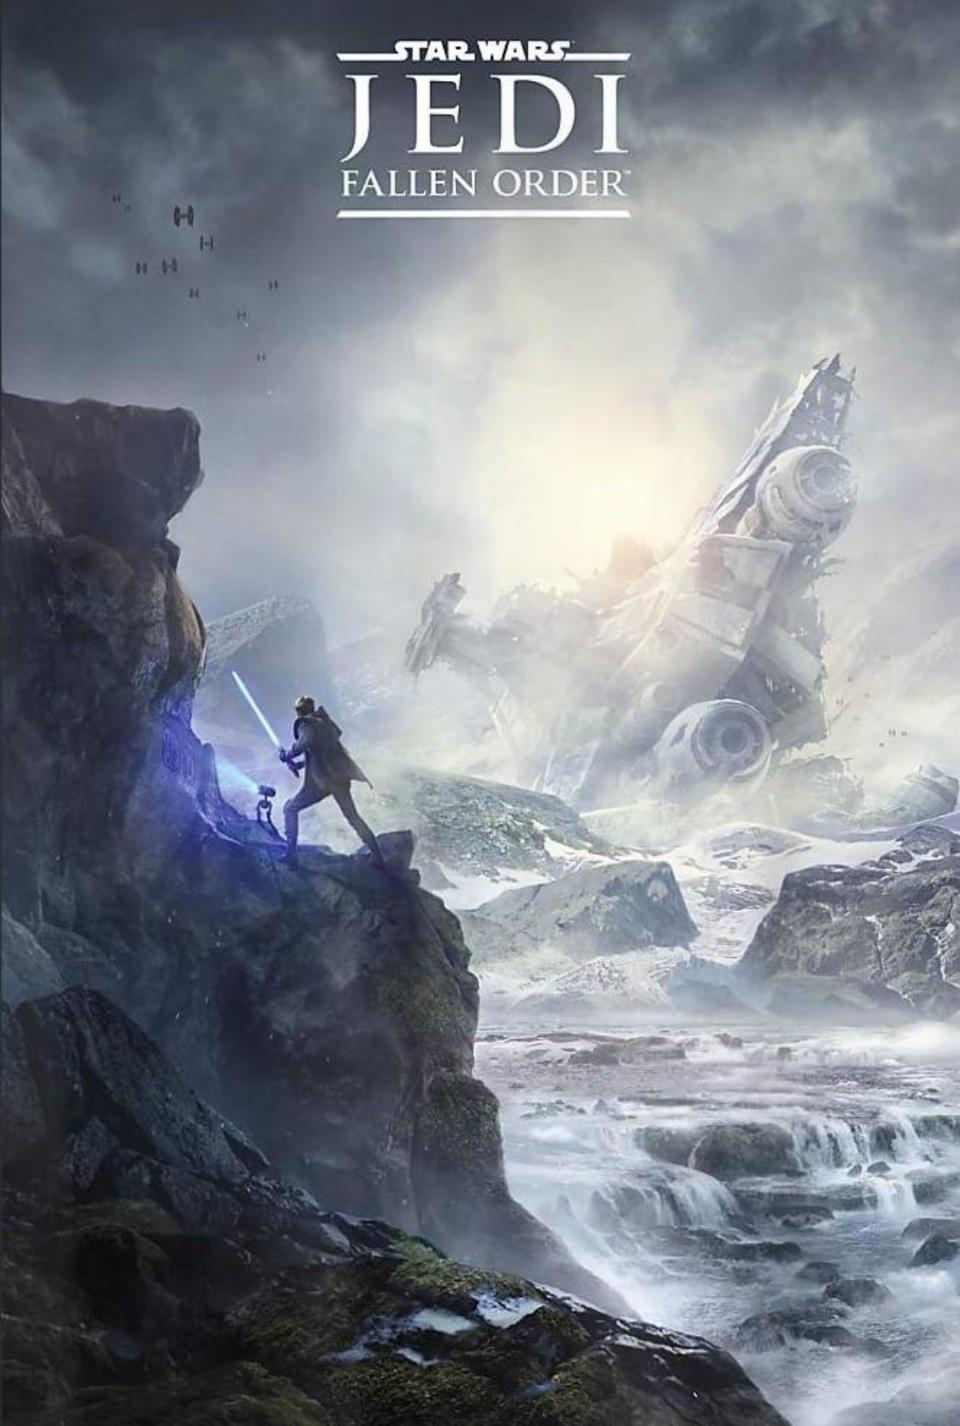 Star Wars Jedi: Fallen Order gets a poster and trailer